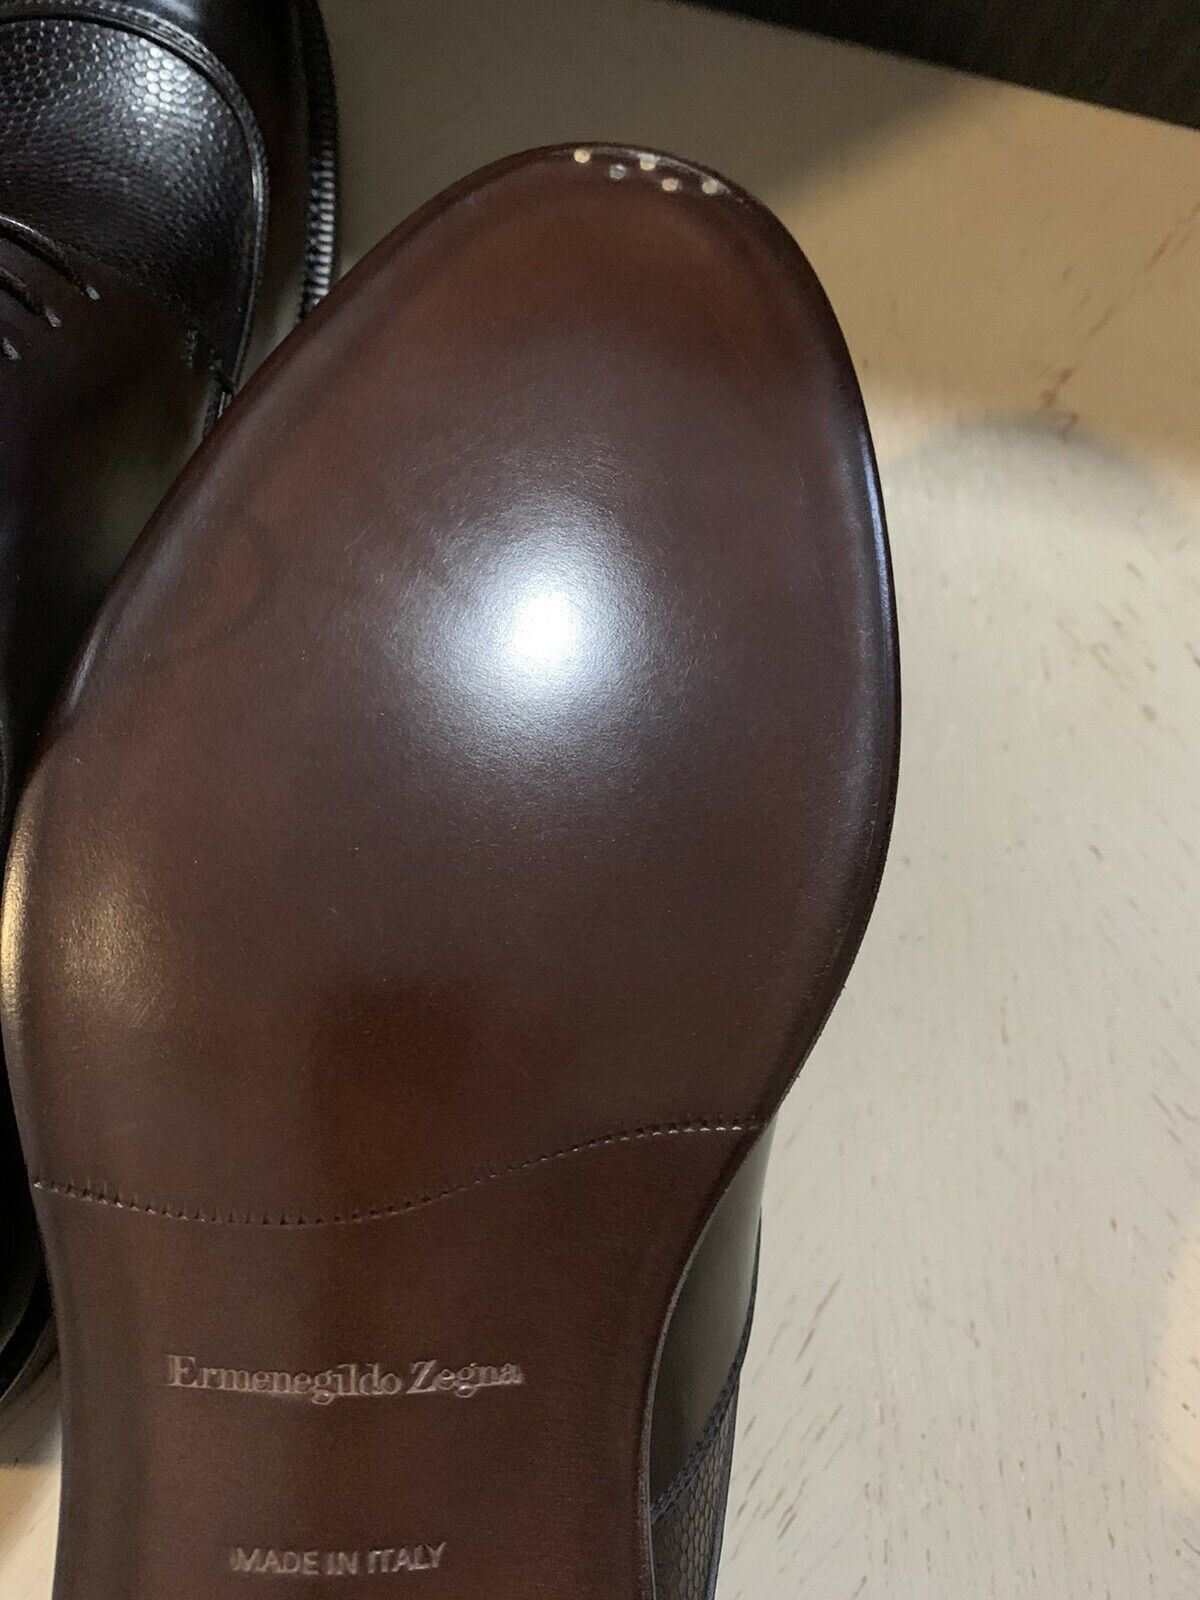 New $995 Ermenegildo Zegna Couture Leather Shoes Derby Dark Brown 10.5 US